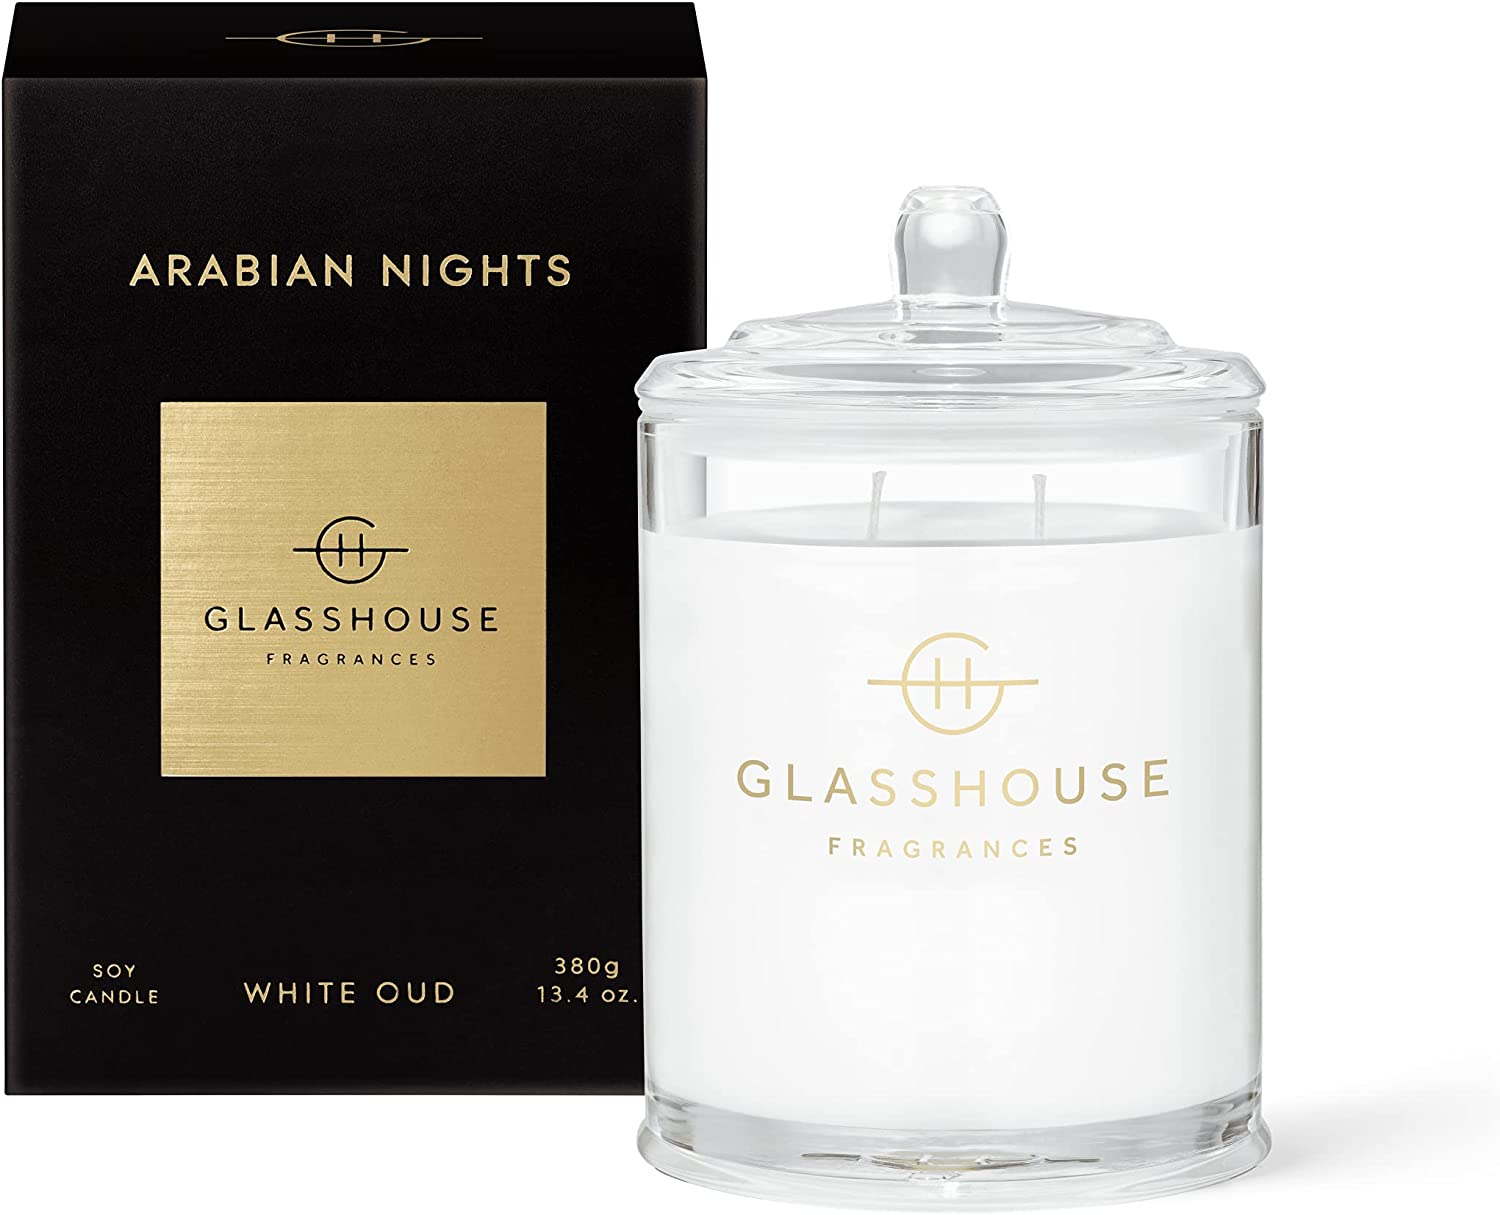 Glasshouse Fragrances Arabian Reservation Nights Triple Max 54% OFF Candle Natu Scented